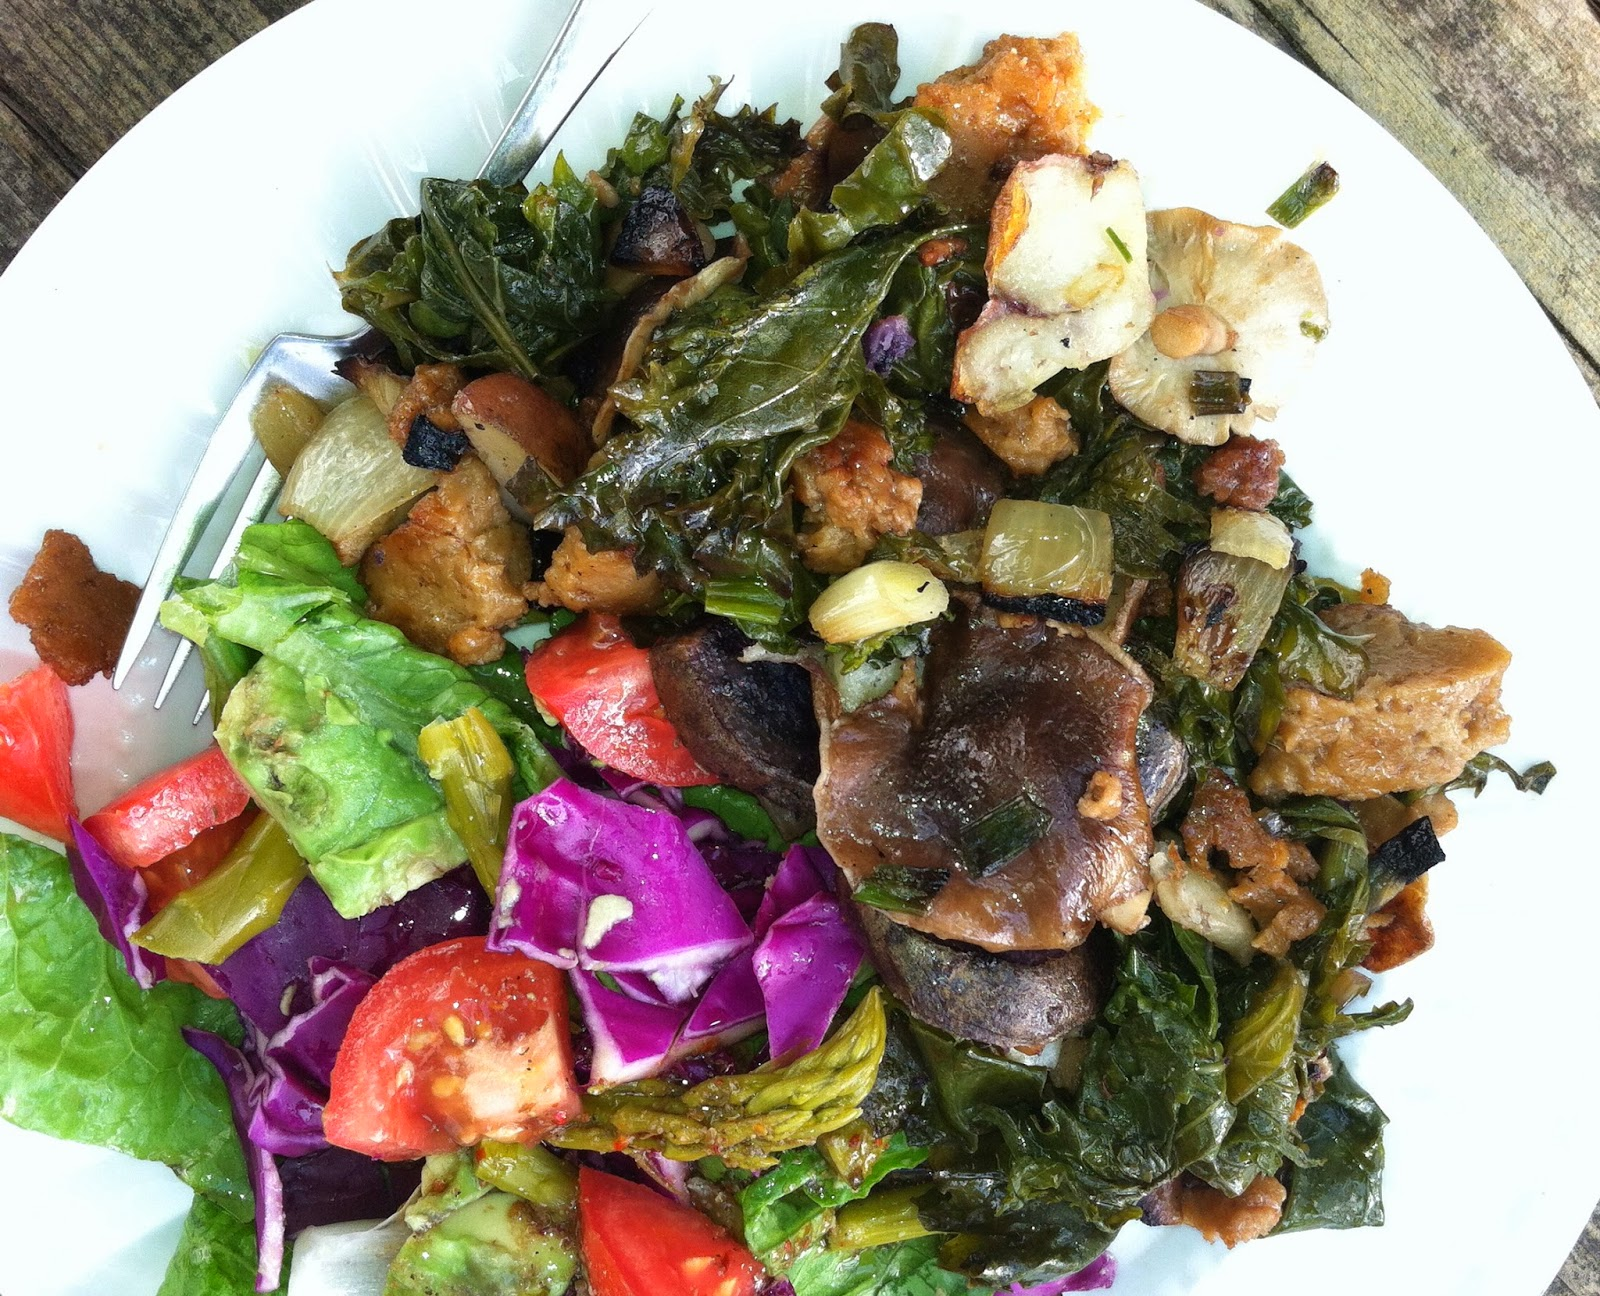 Food Connections: Kale, Potatoes and Green Garlic